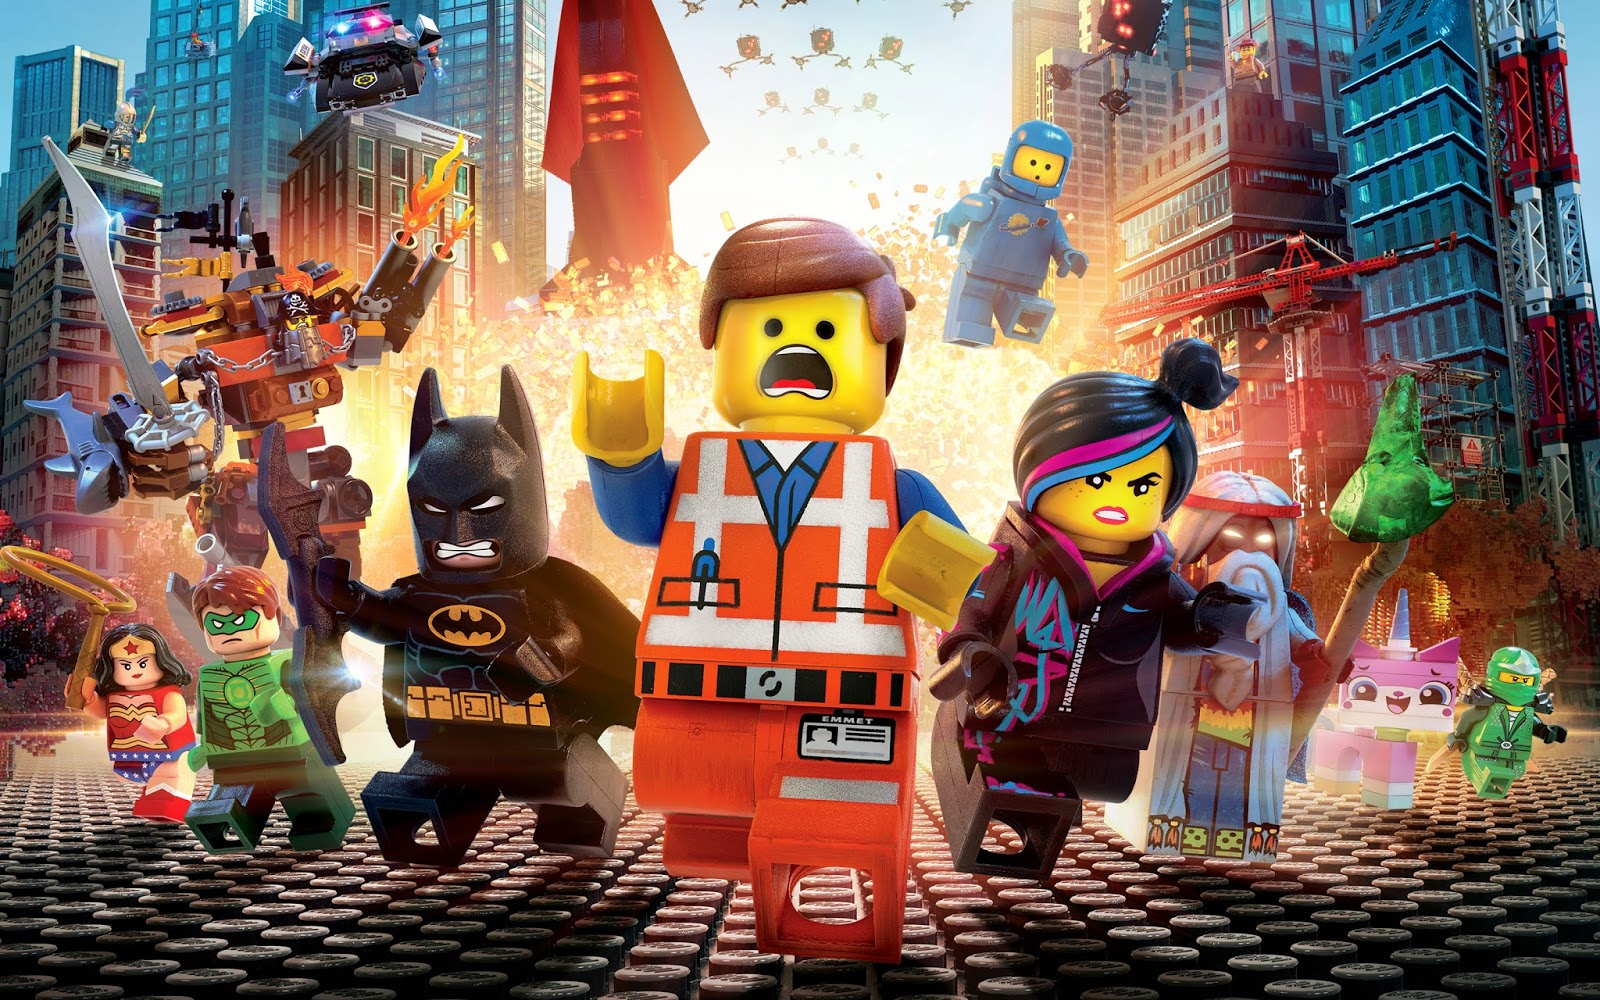 HD poster Lego movie wallpaper